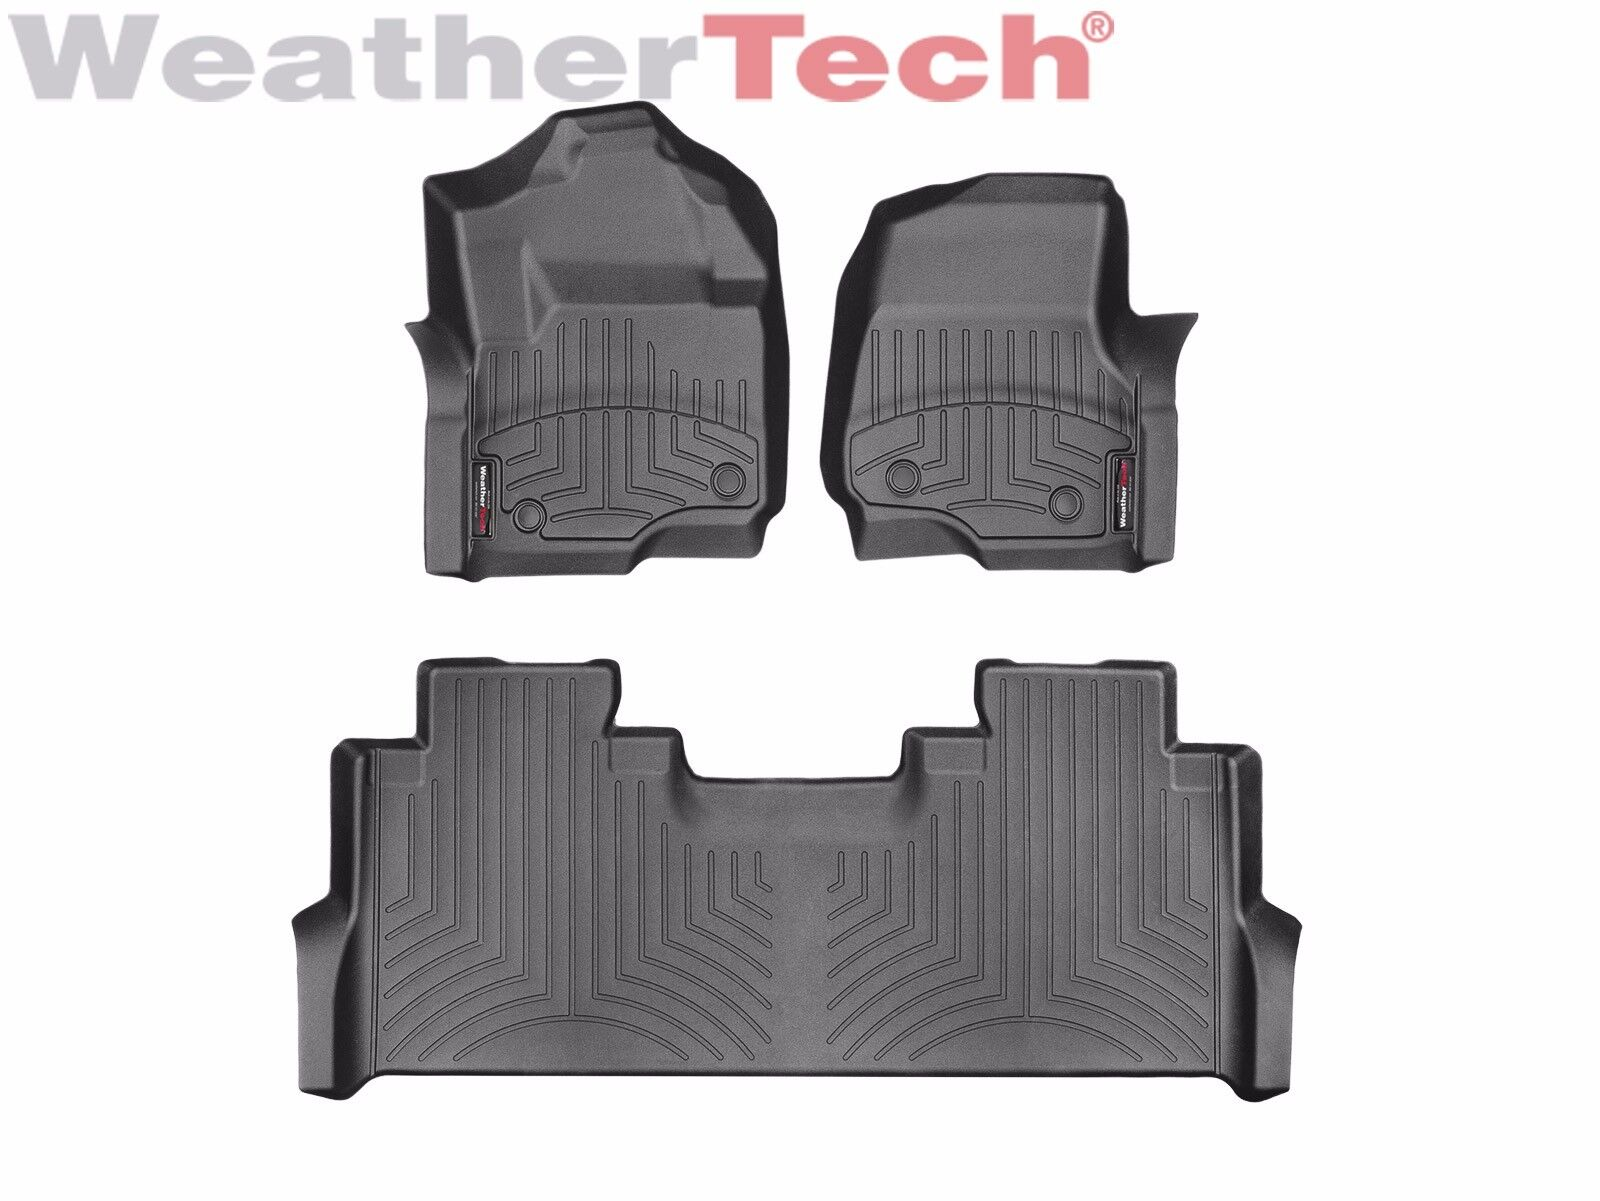 Weathertech Floor Mats Kia Sorento - Weathertech floor mats floorliner for ford super duty crew cab 2017 black